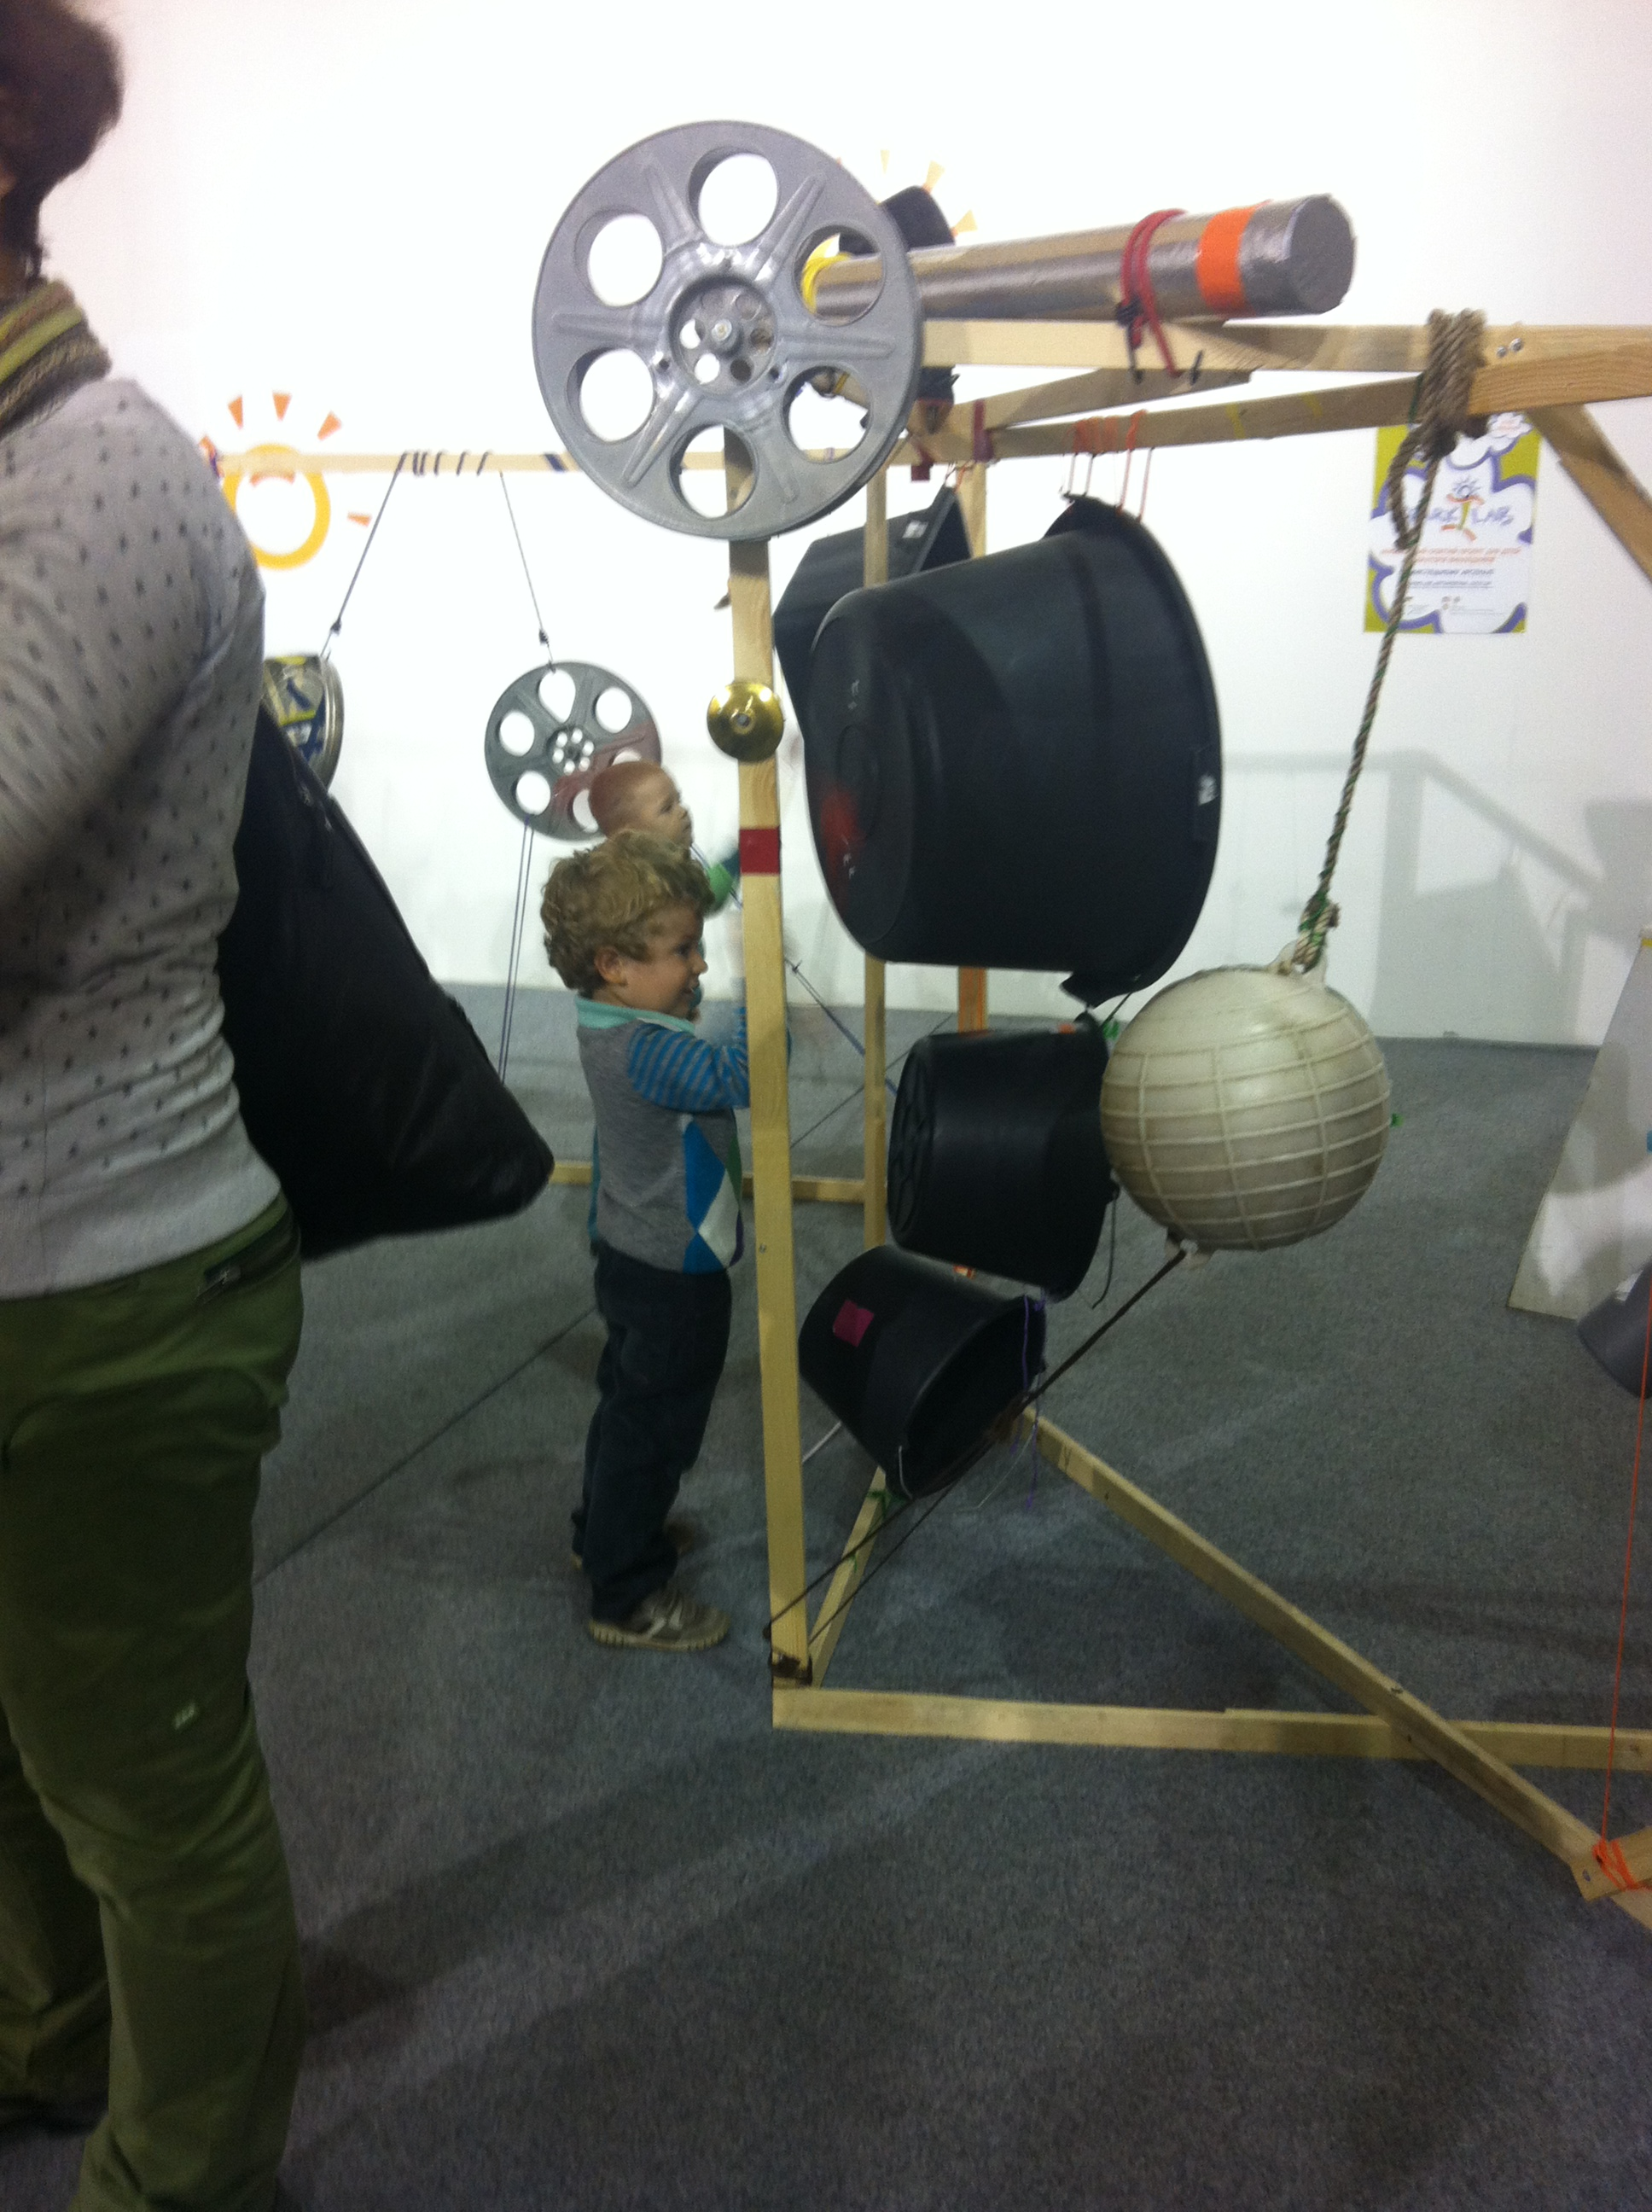 """Boy banging on a buoy that is part of a """"found object"""" percussion sculpture"""